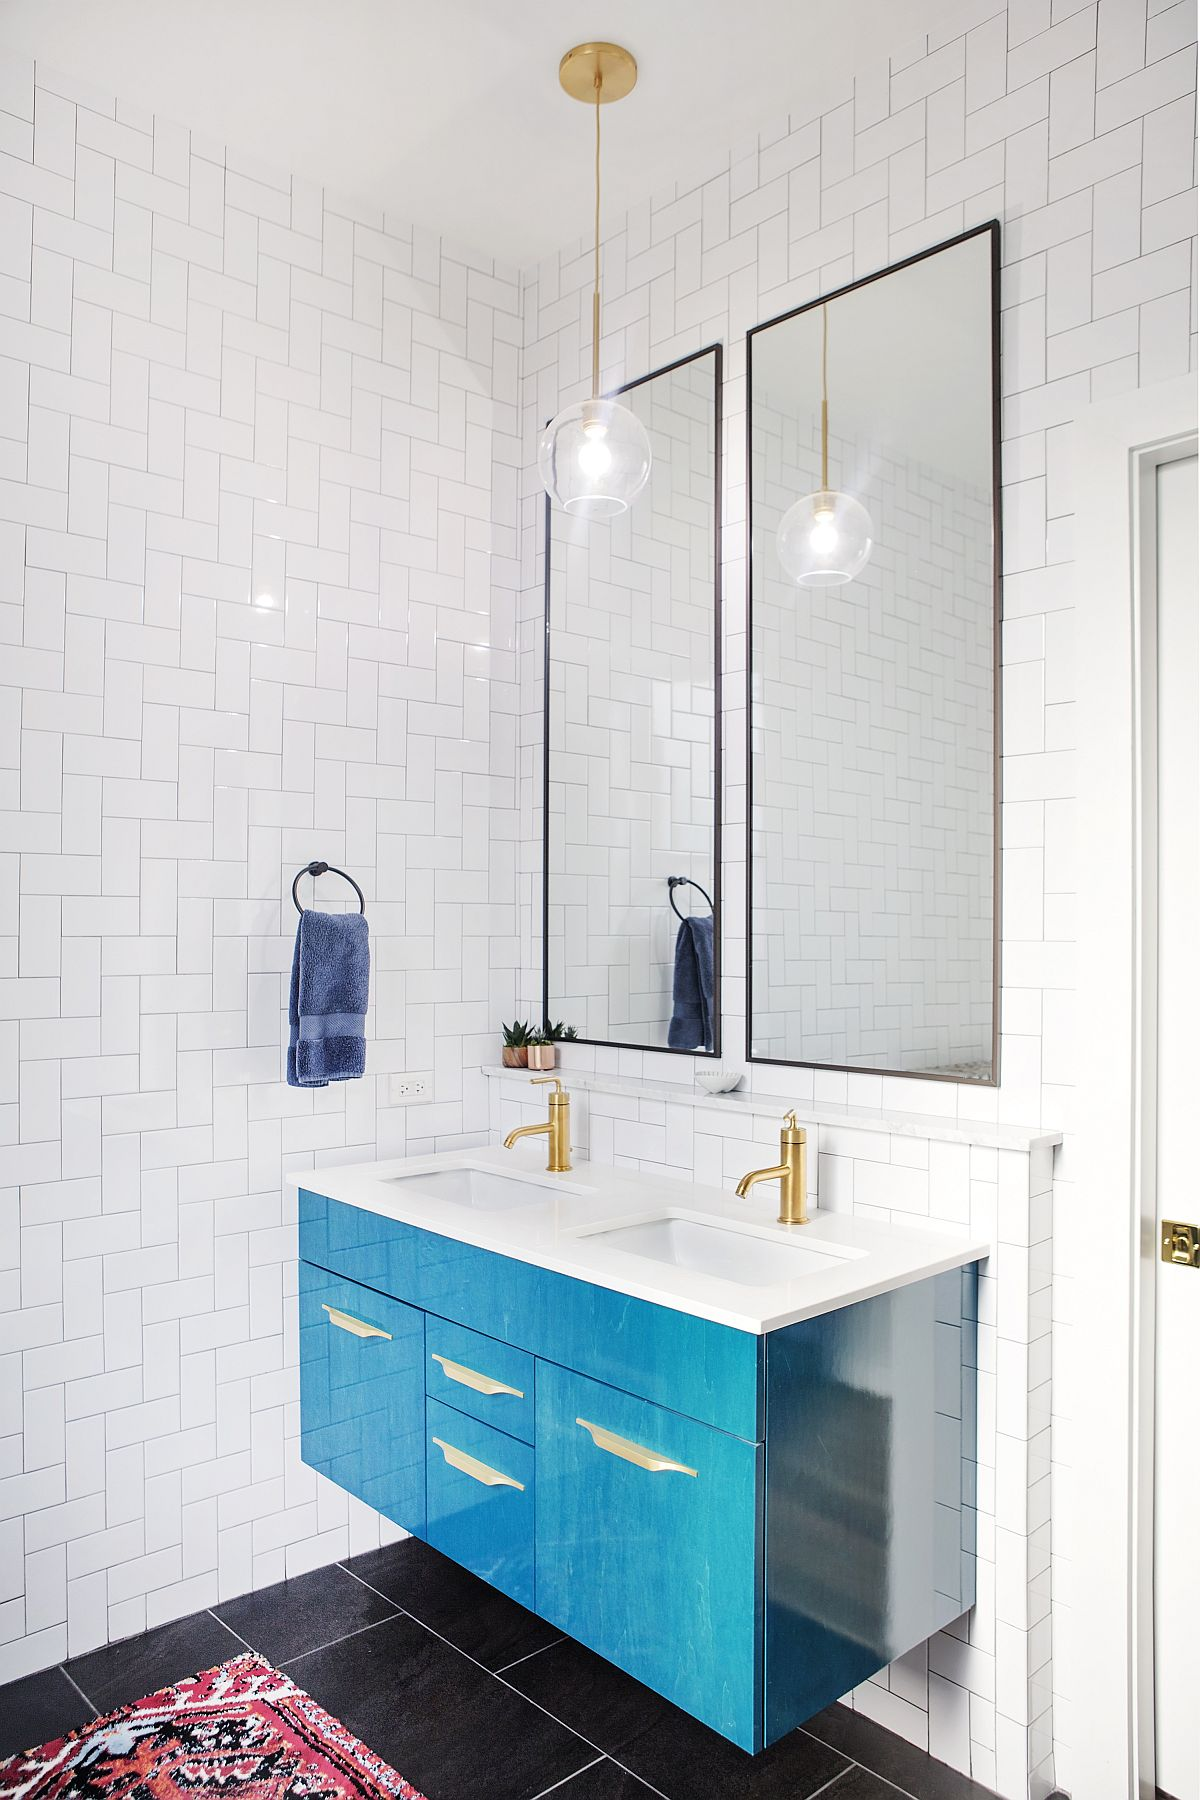 Blue vanity for the bathroom adds color and contrast to the space